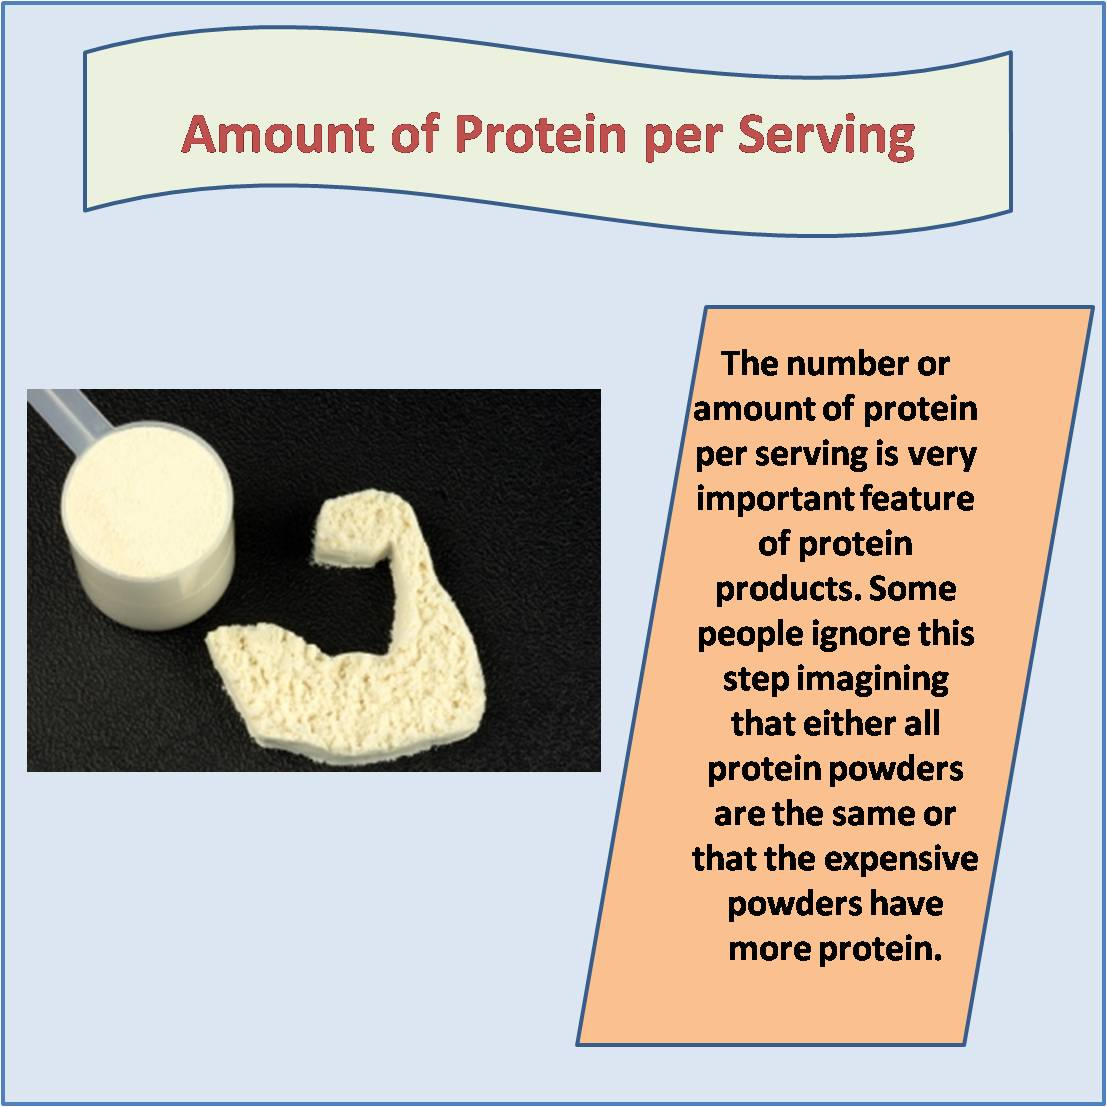 Amount of Protein per Serving